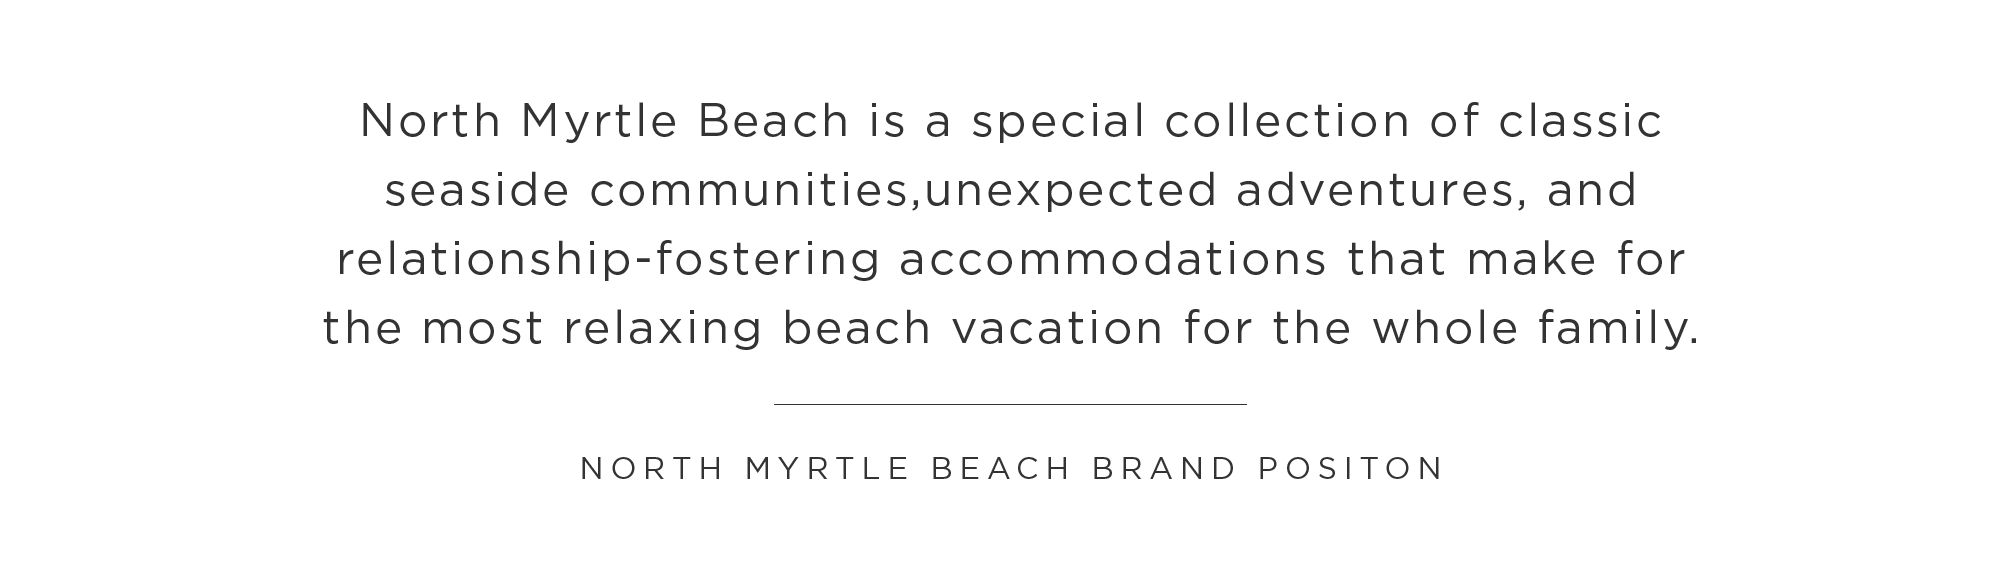 Vacation Strategy Myrtle Beach